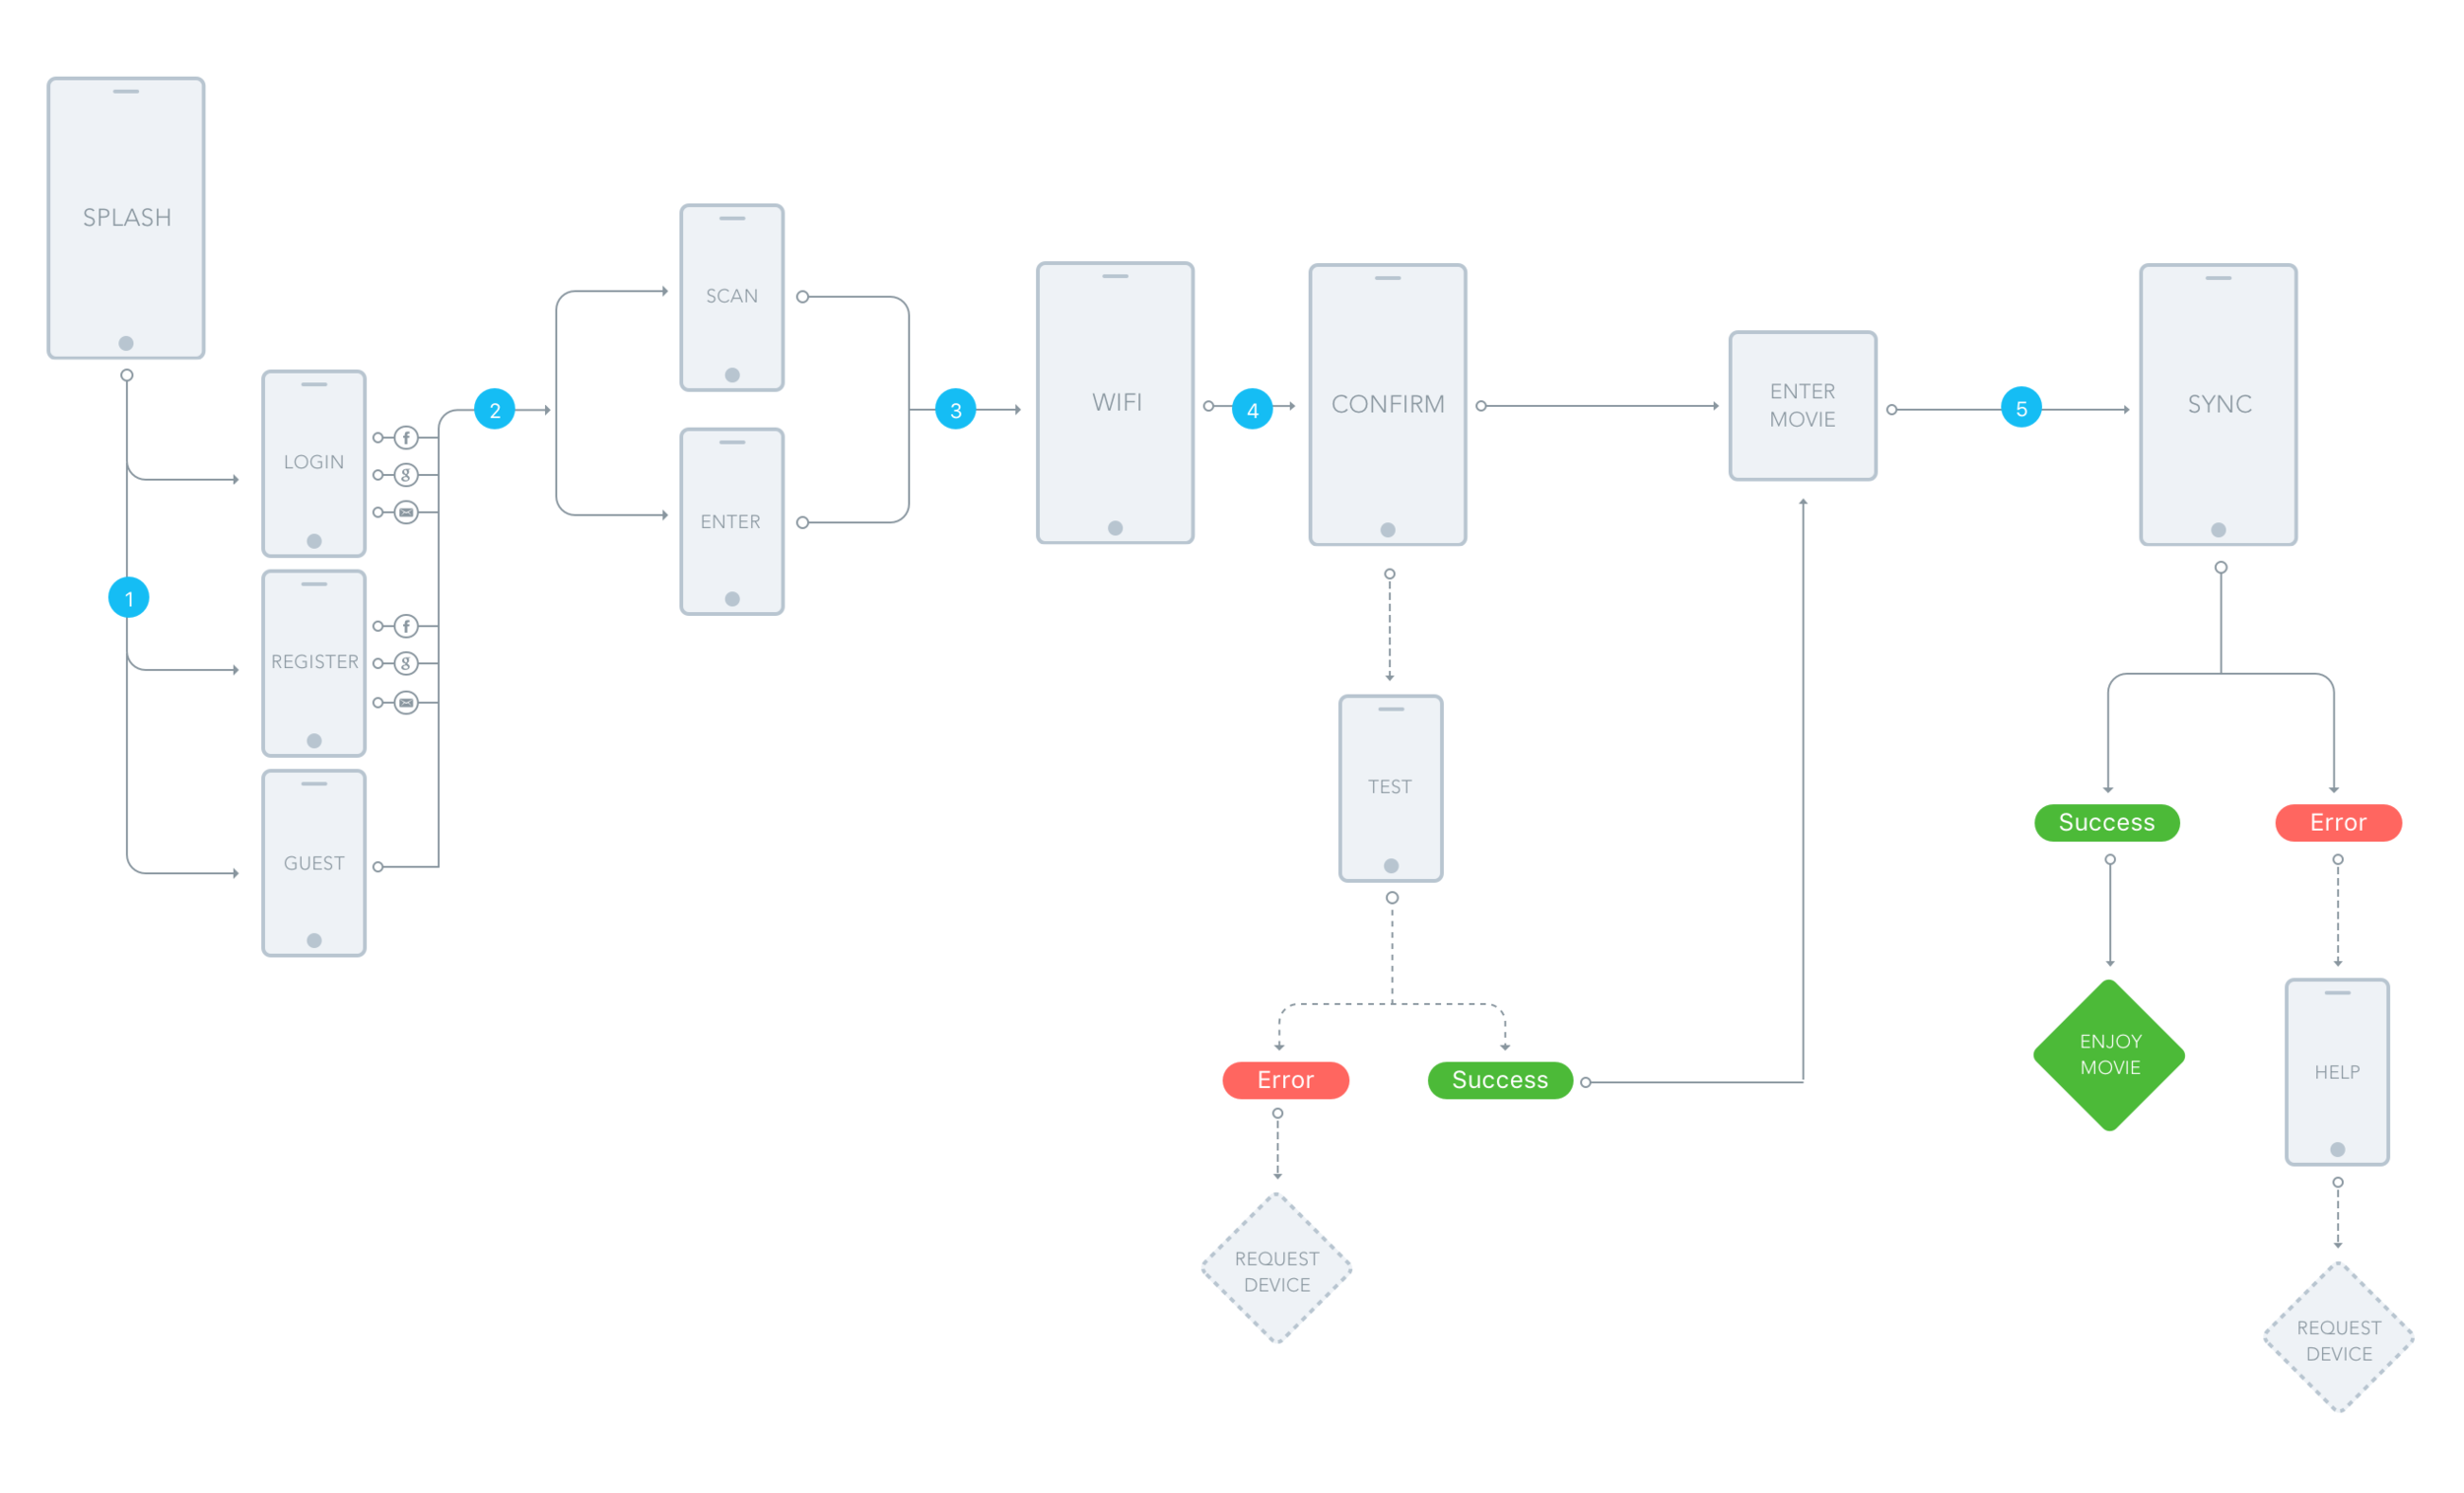 How we envisioned the user flow of our application